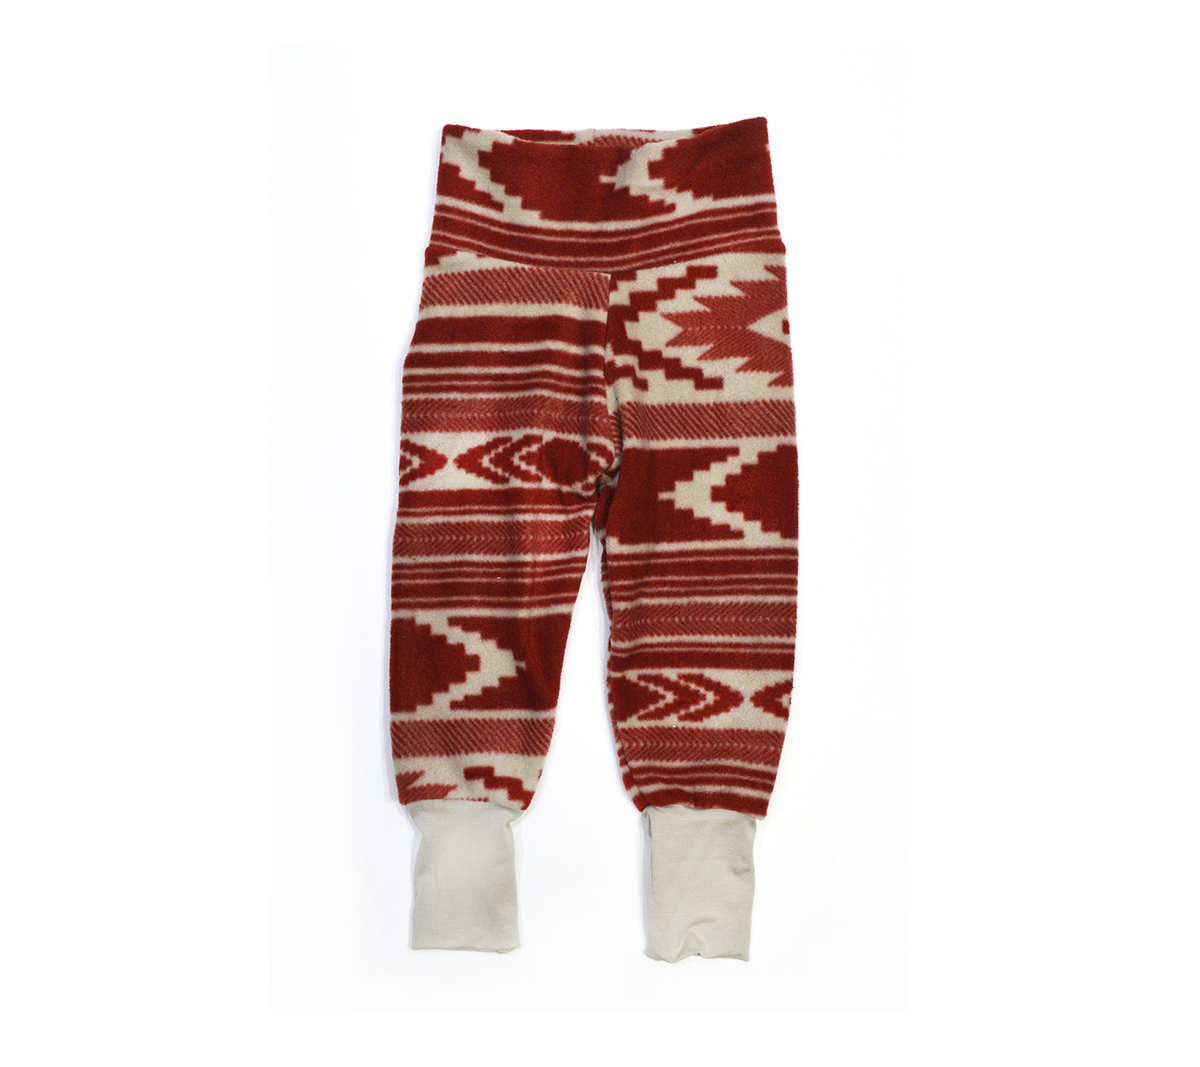 Little Sprout Pants™ Red & Tan Print - Fleece 00691